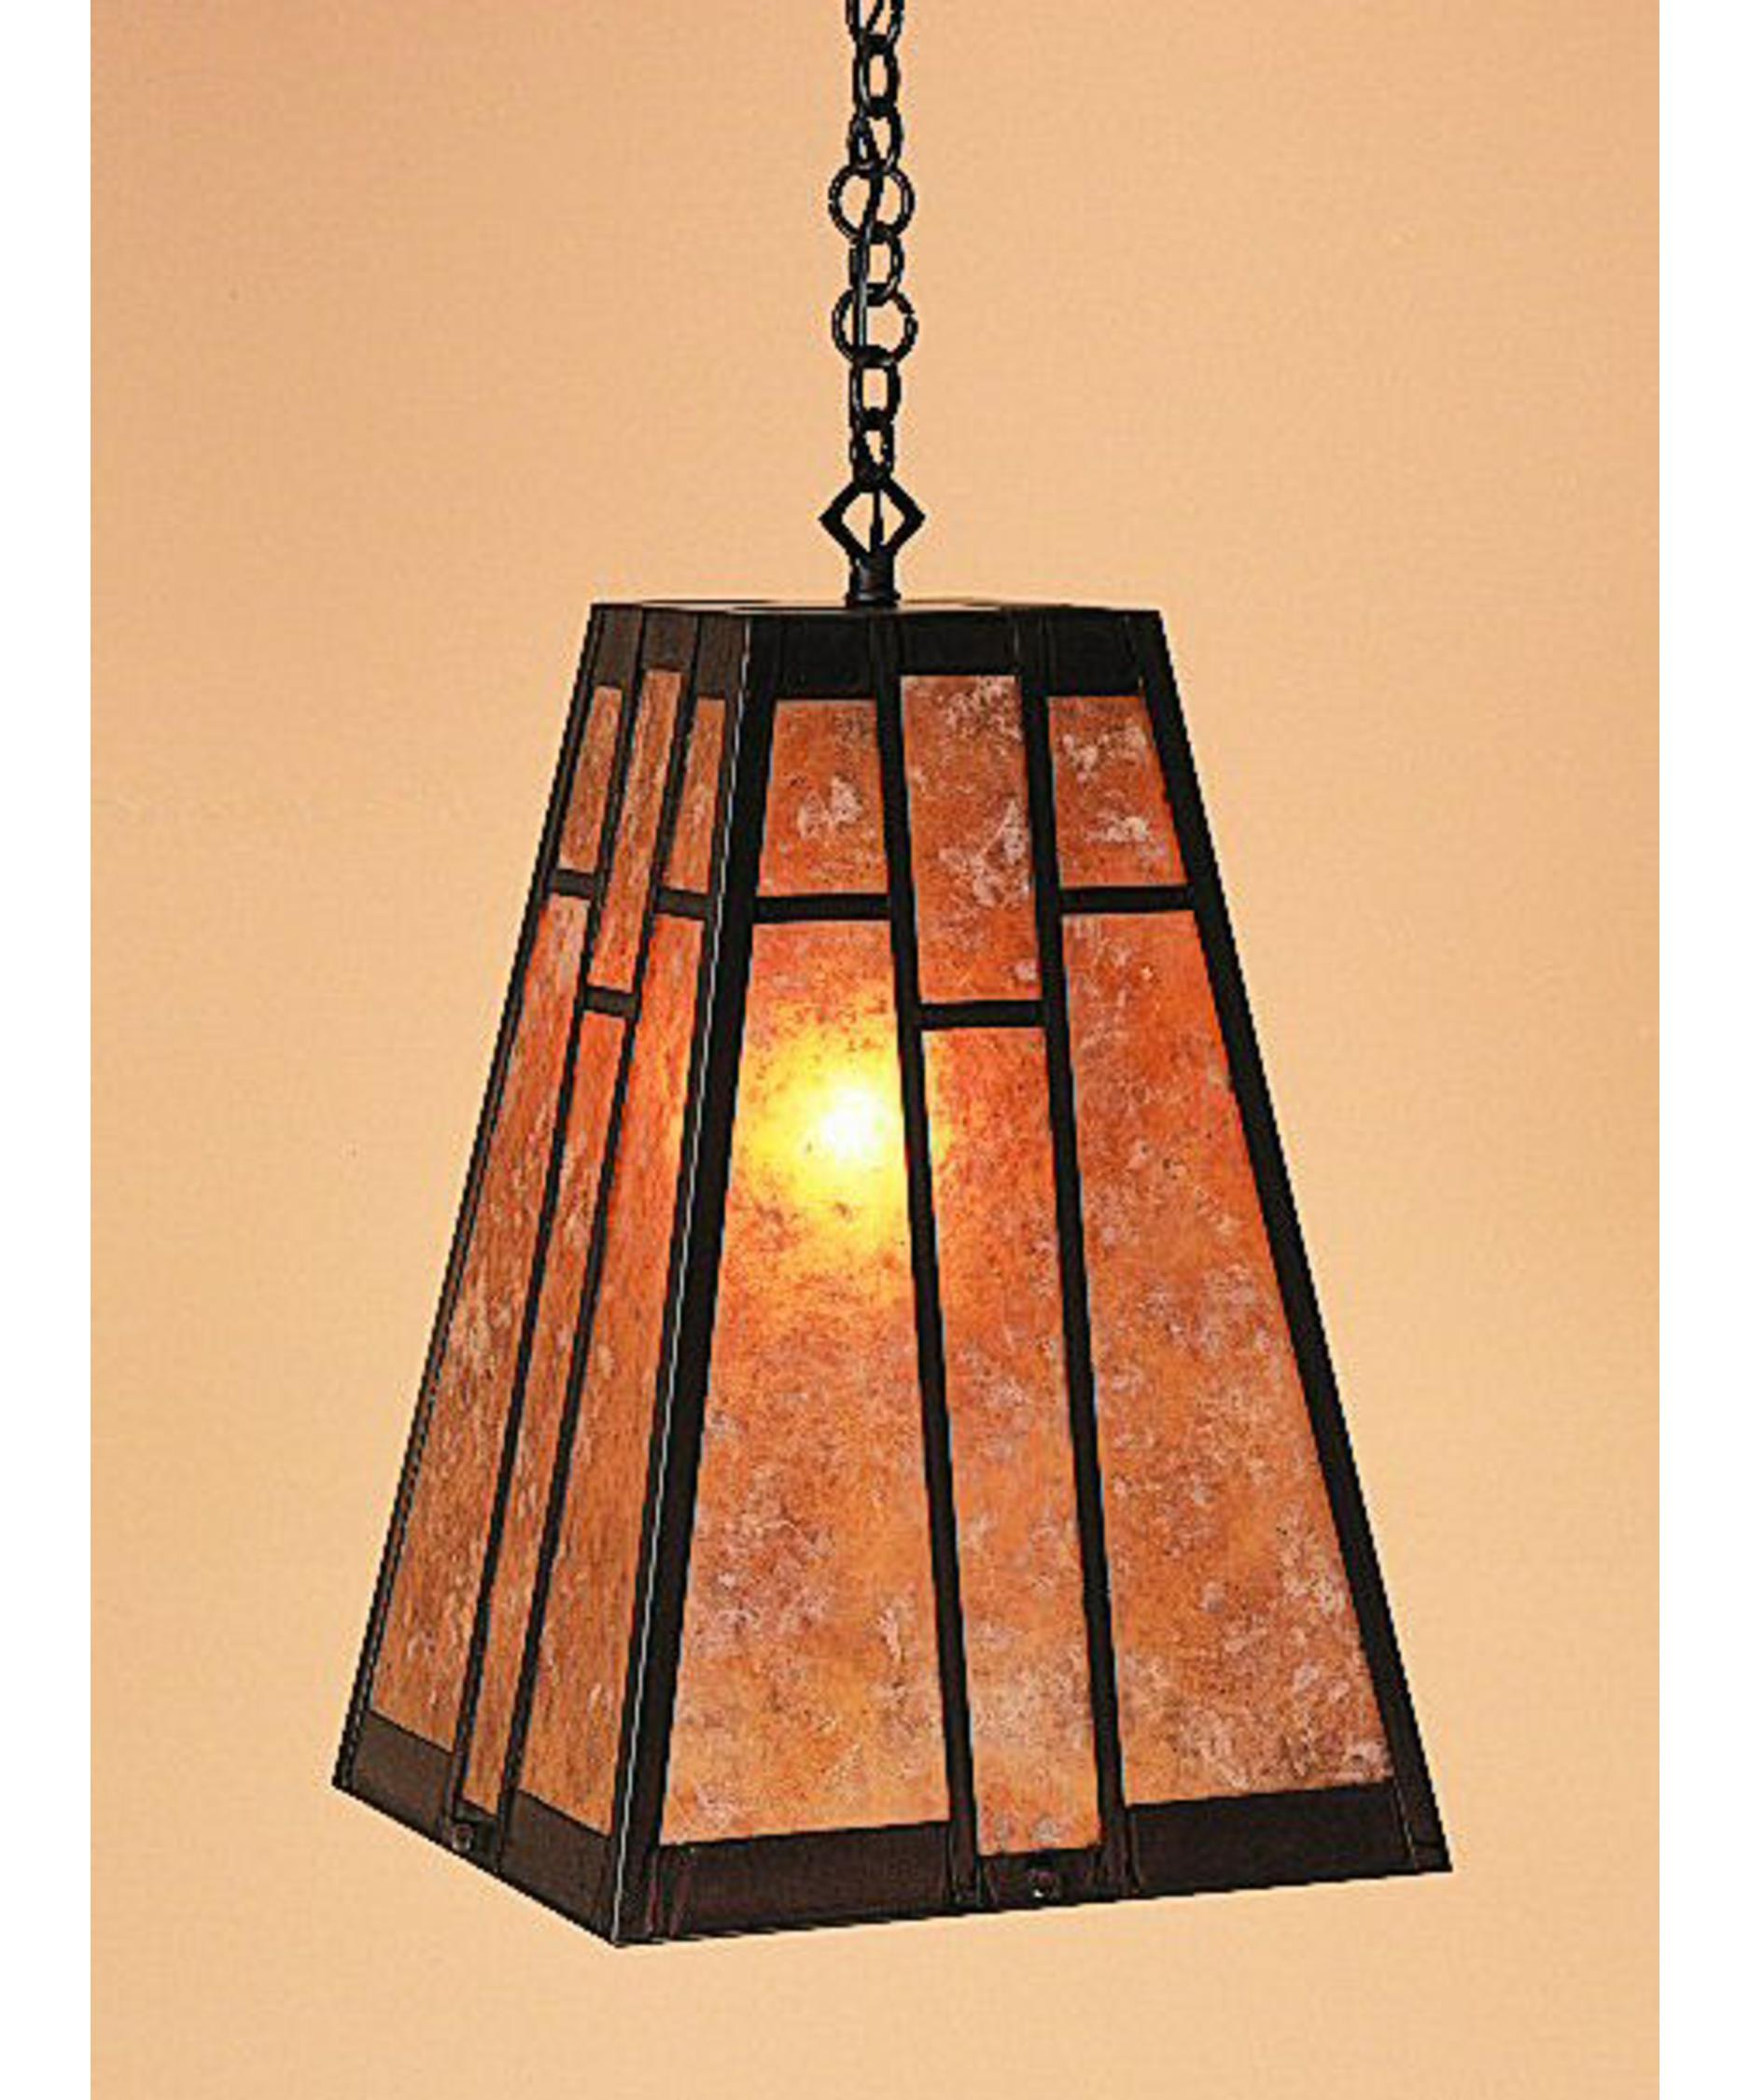 shown in bronze finish with almond mica glass arroyo craftsman lighting